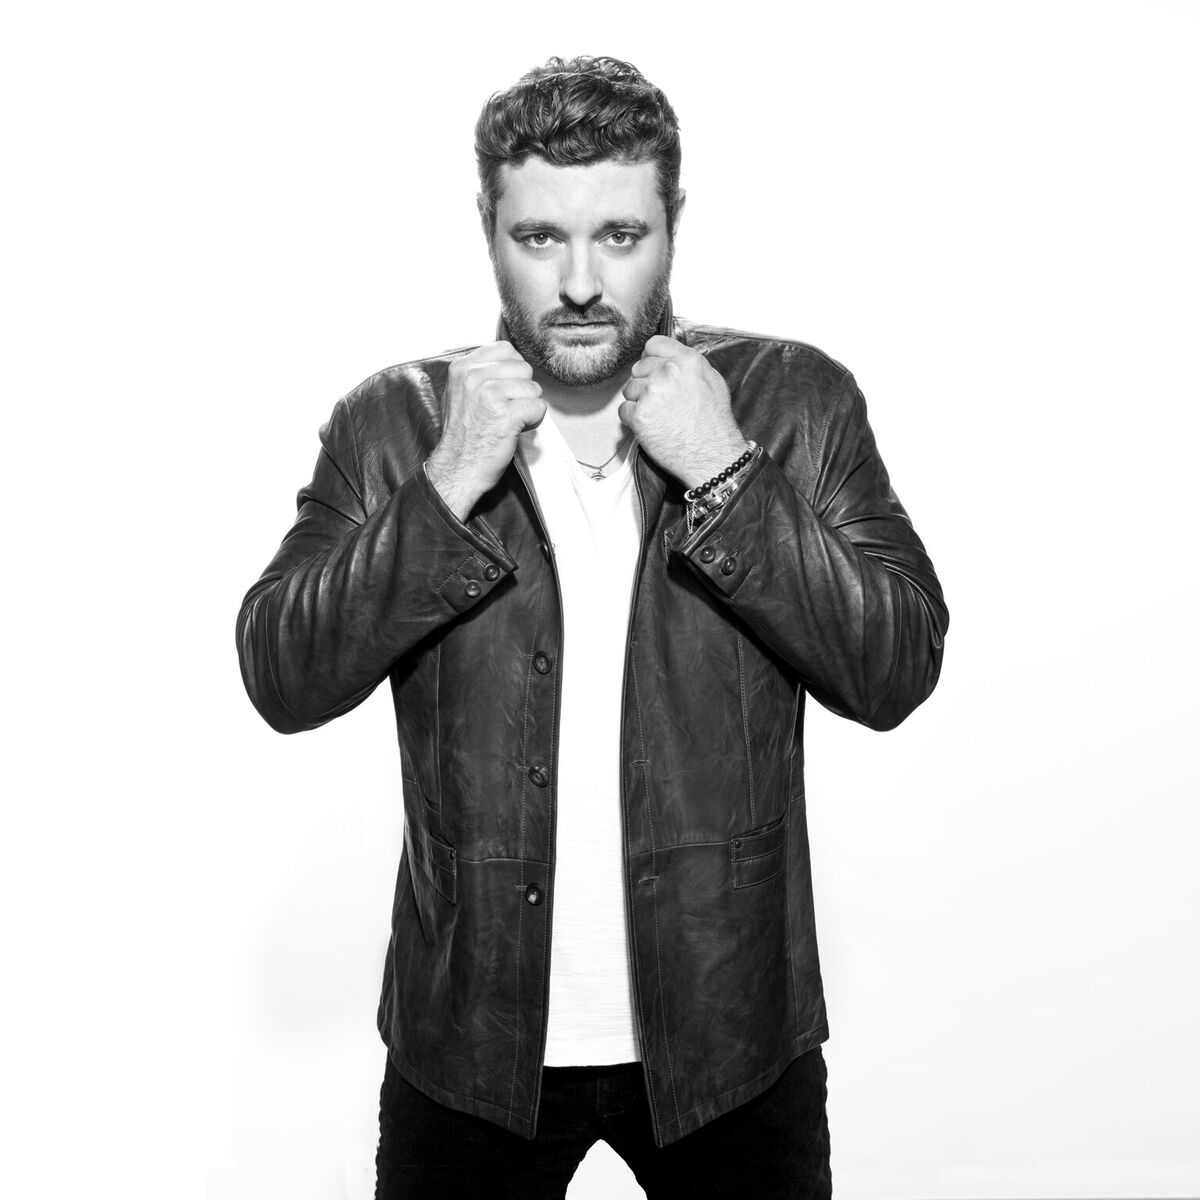 Chris Young claims top spot on Billboard's top Country Albums chart